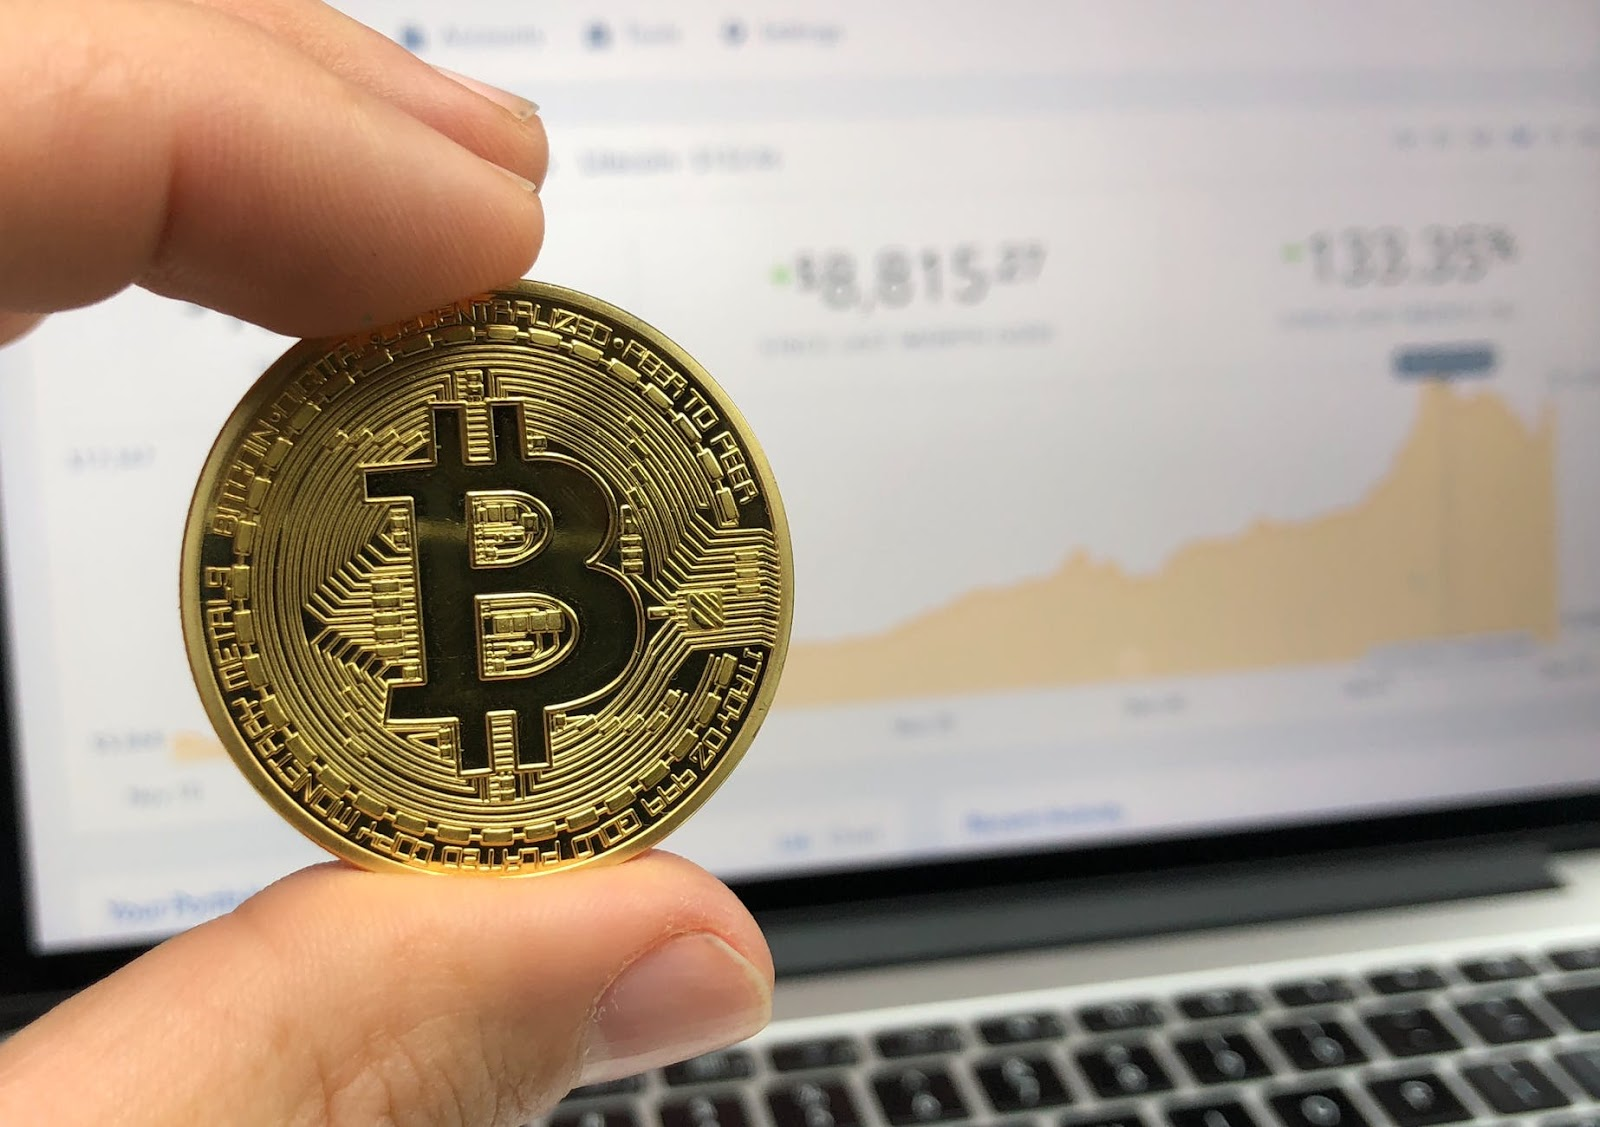 Bitcoin Reaches The Highest Price Level Of $7.5K Since ...